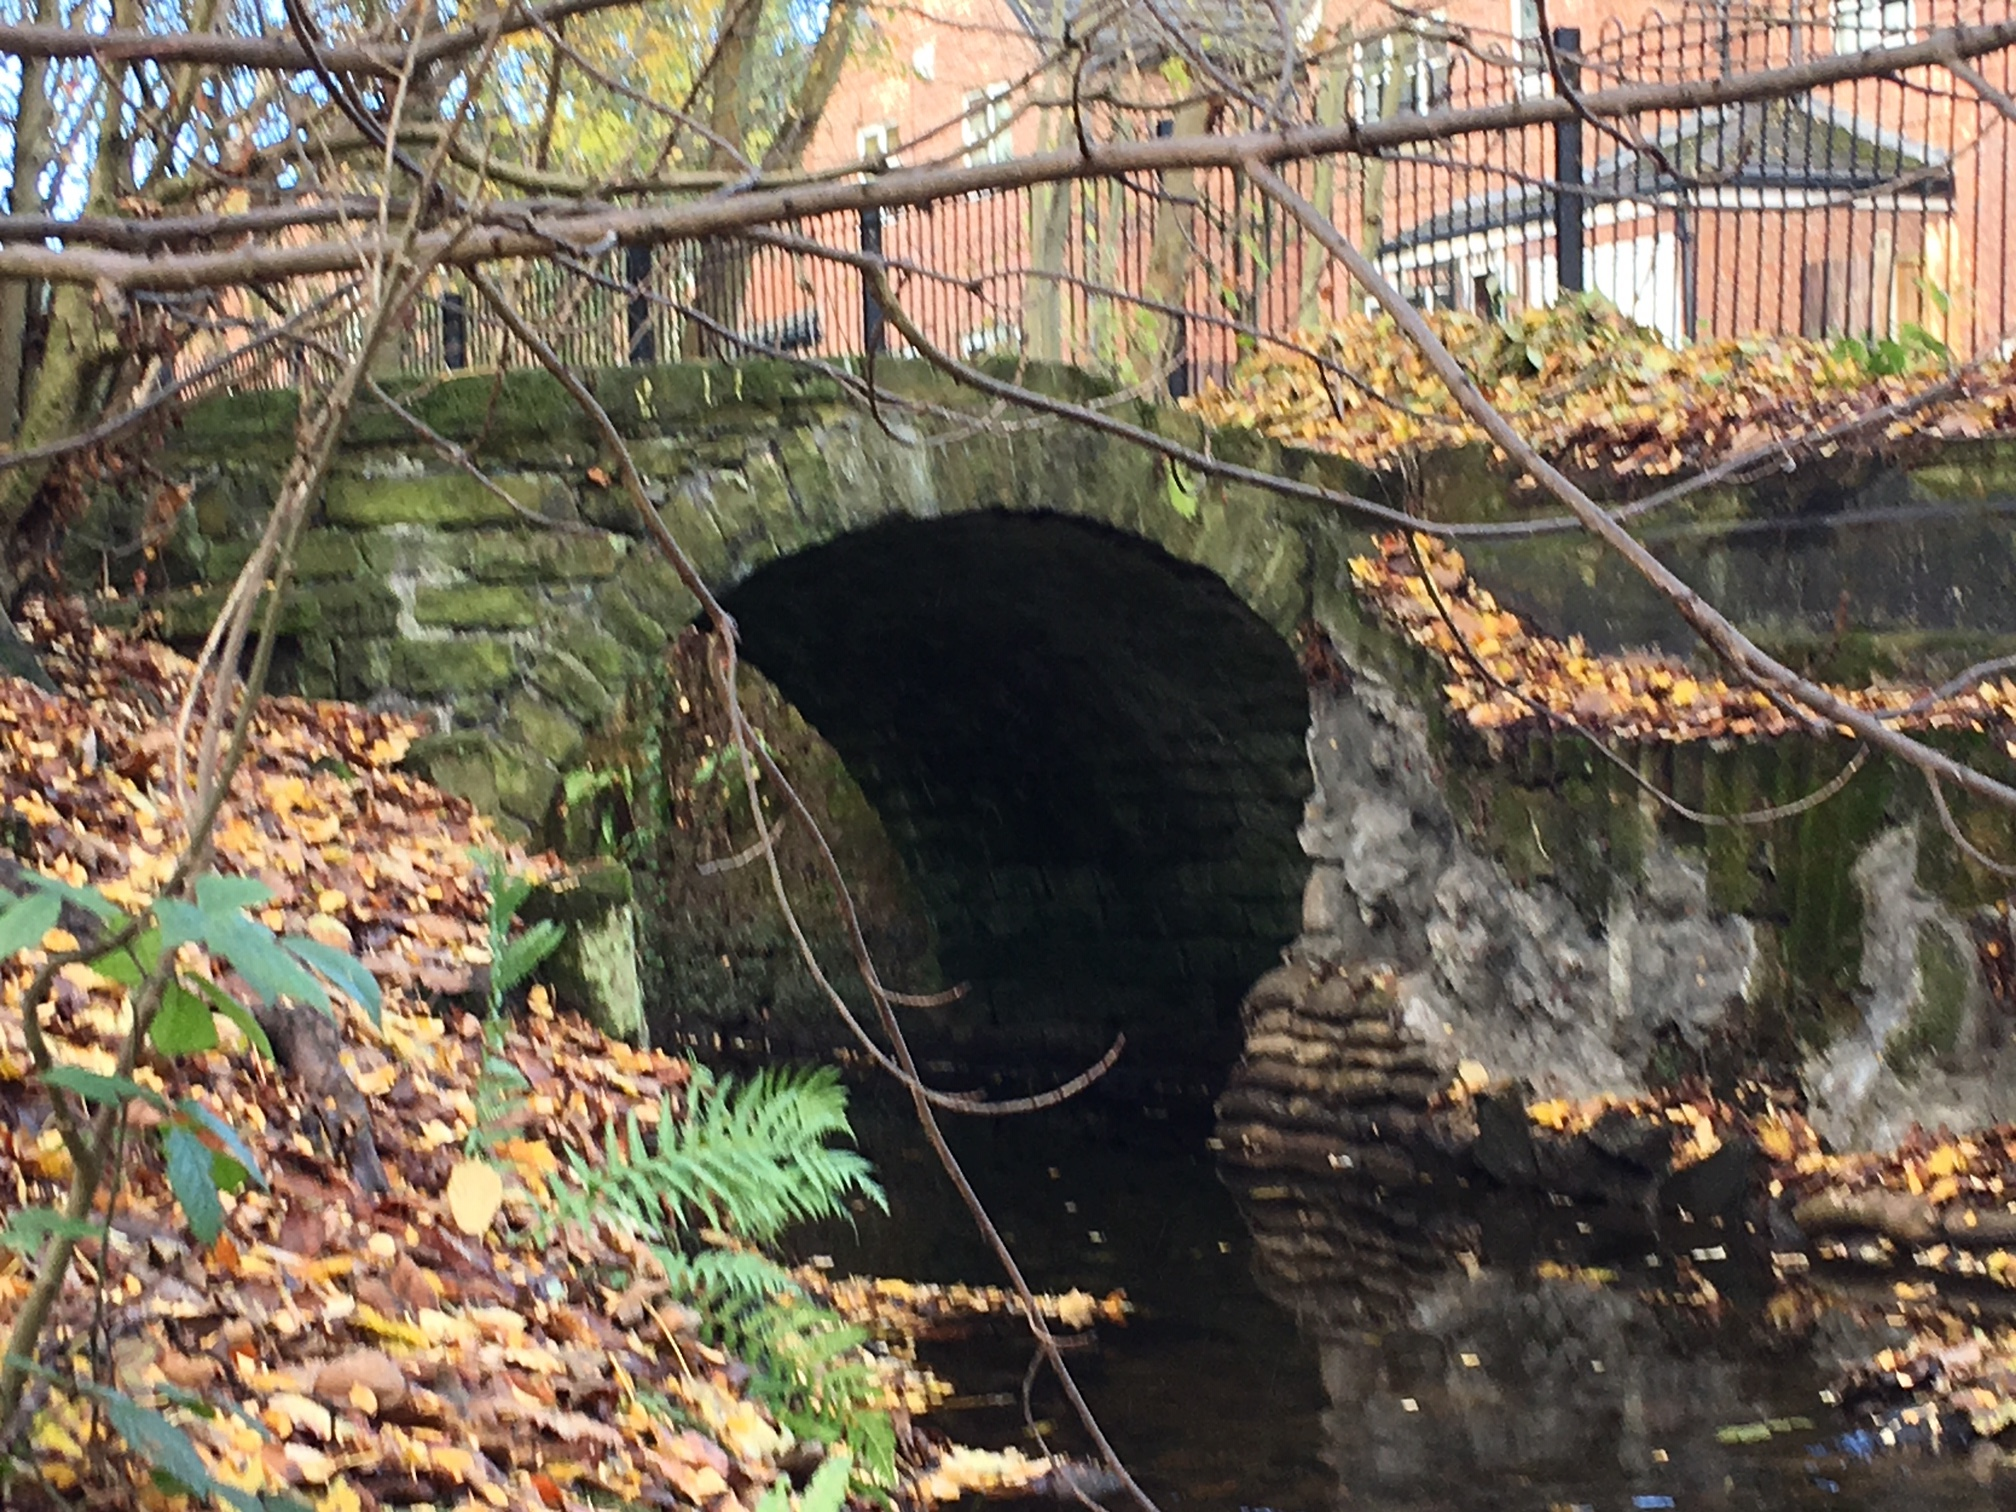 31  Pack horse bridge, to Grove Mill, 2019